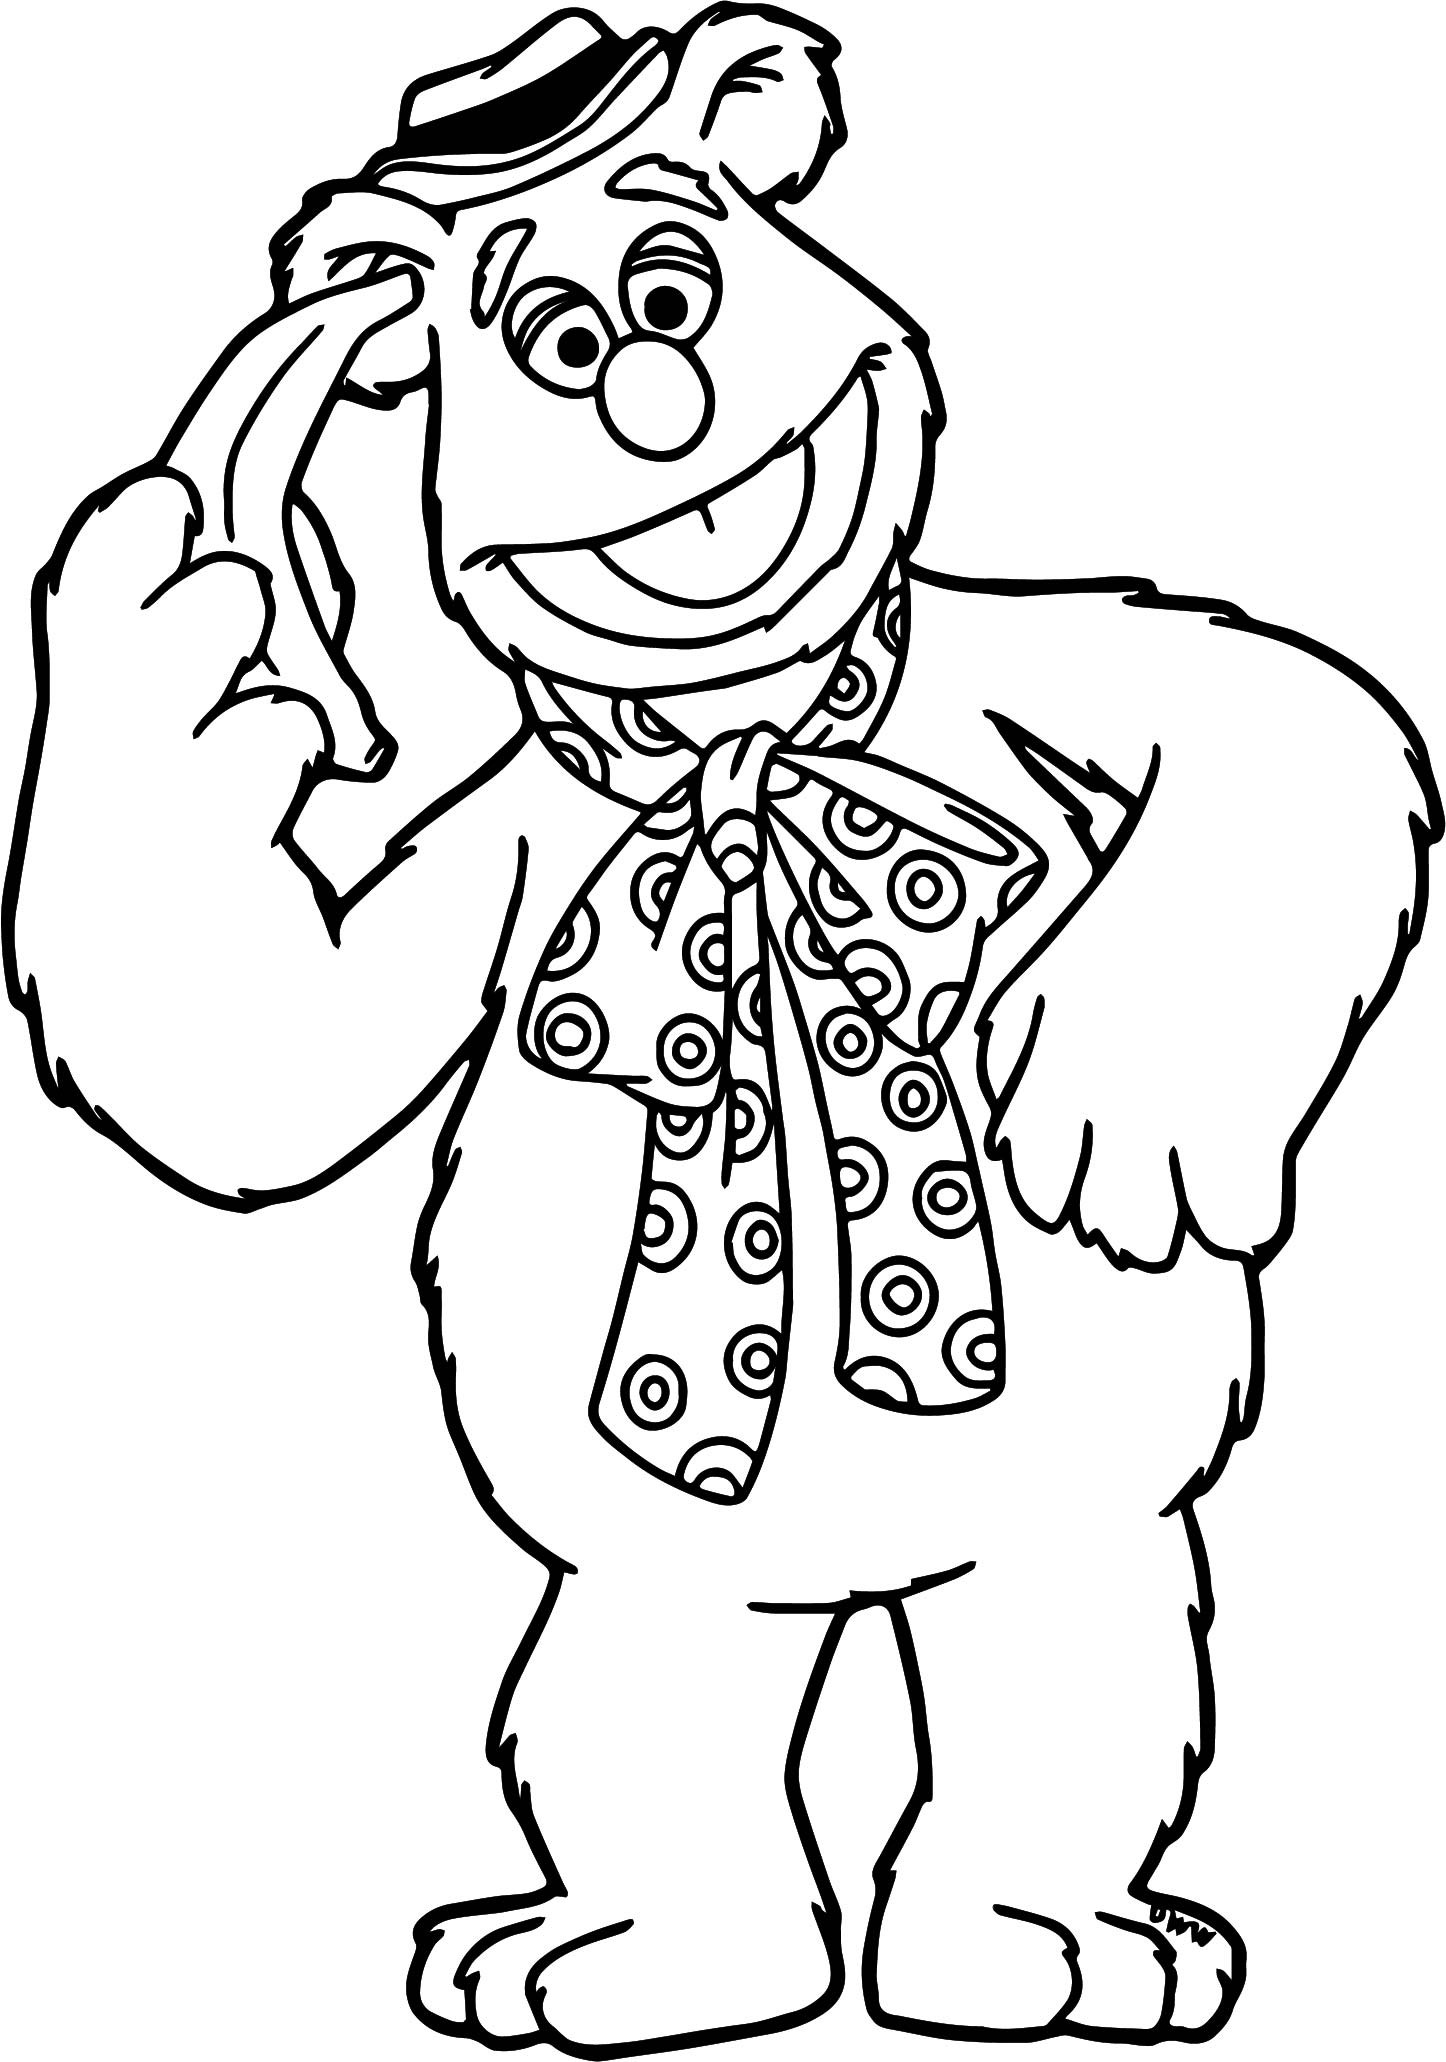 Muppets Coloring Book Pages  The Muppets Fozzie Coloring Pages